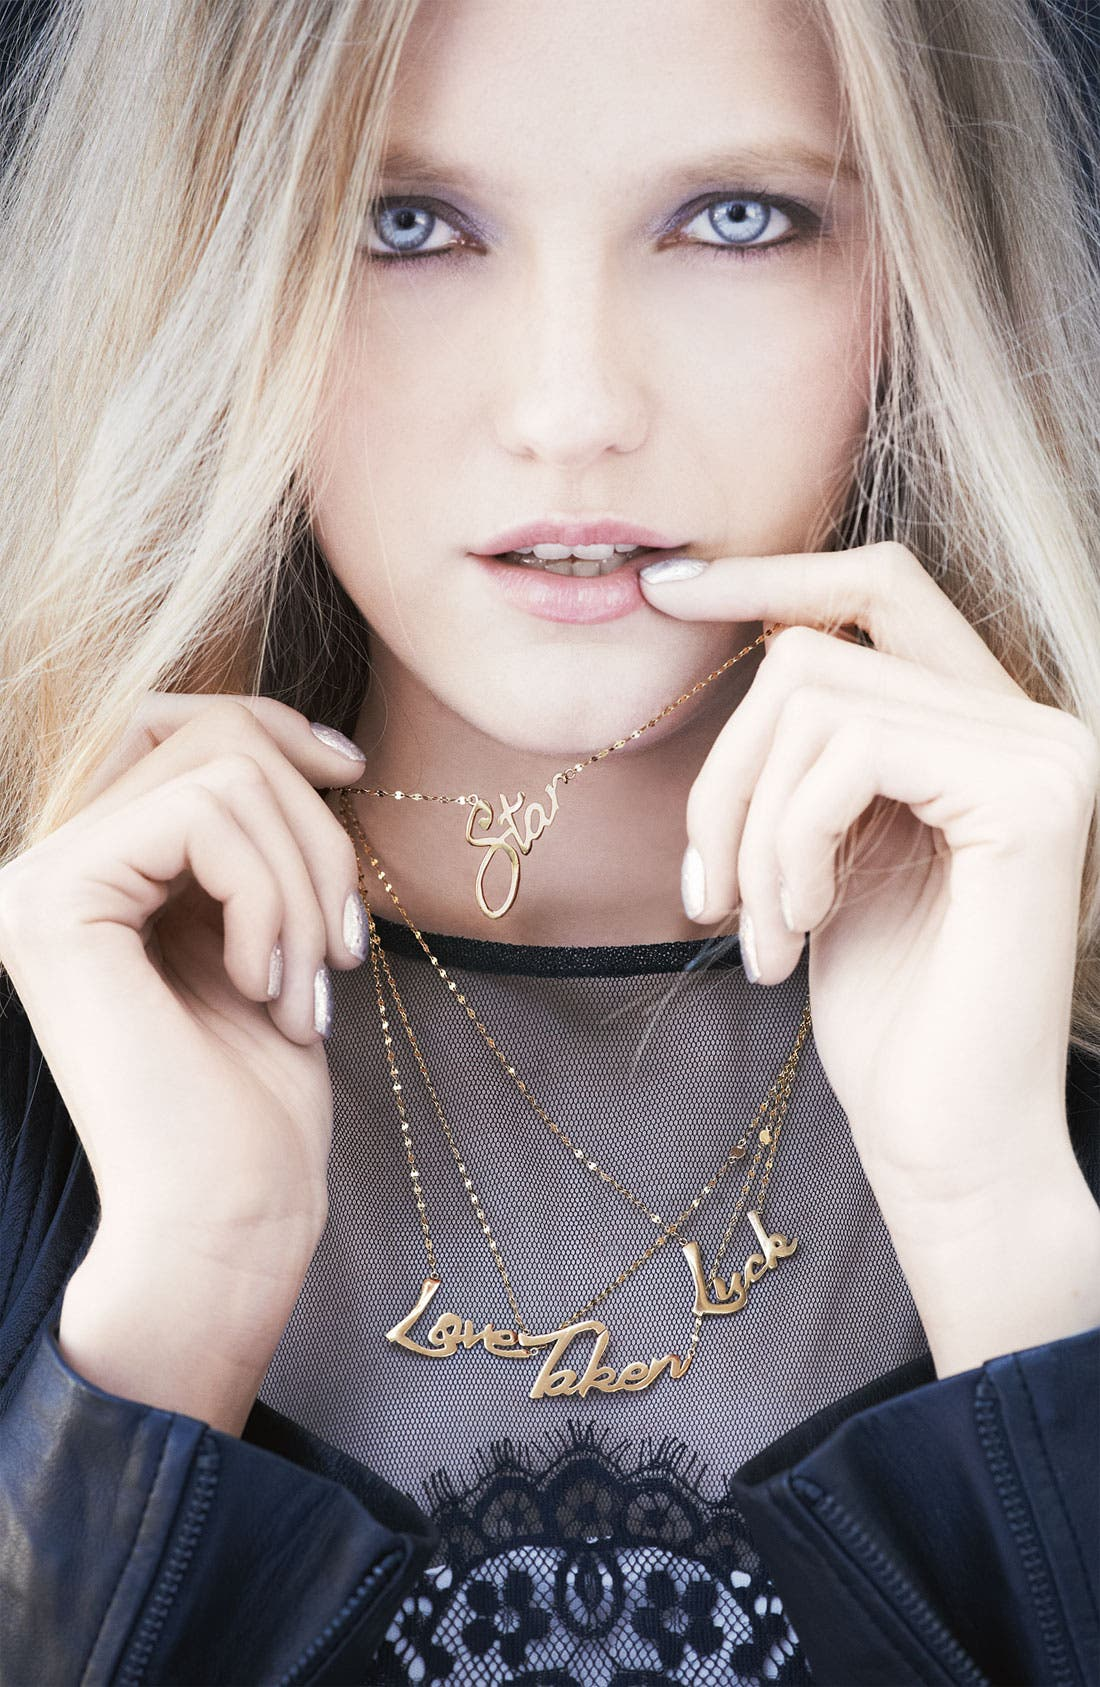 Alternate Image 3  - Lana Jewelry 'Love' Charm Necklace